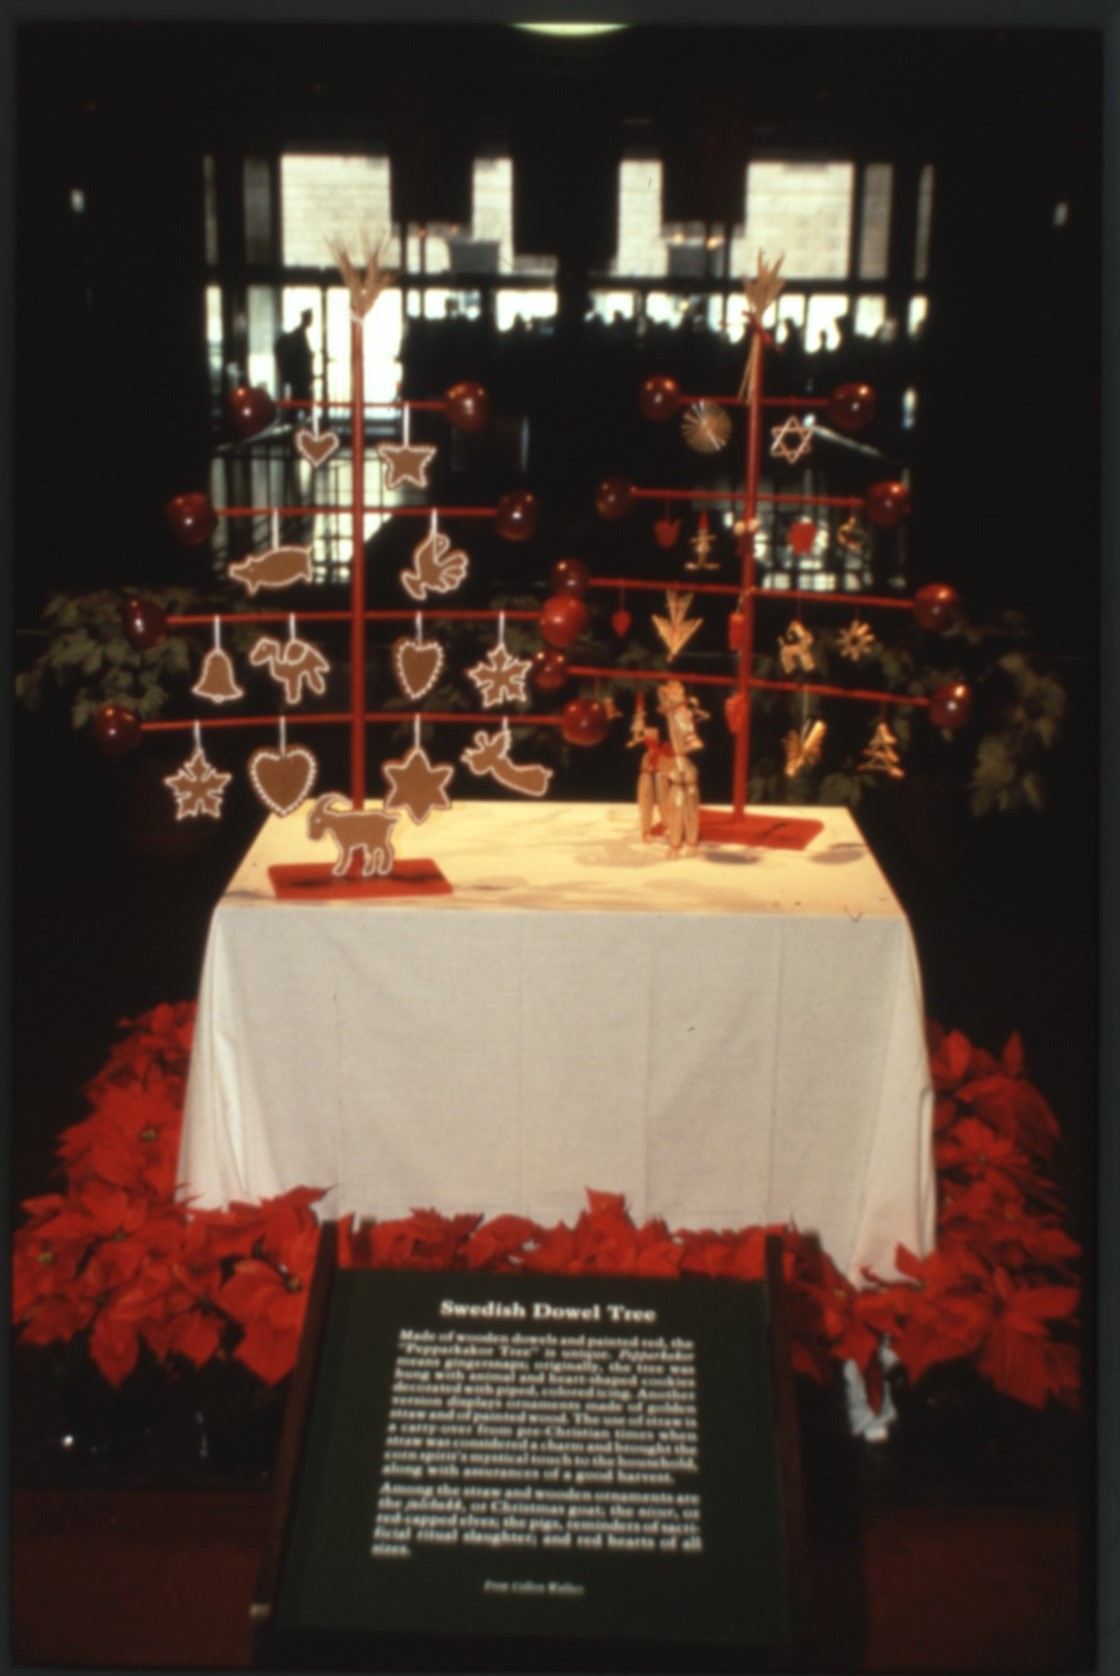 Swedish Pepparkakor Tree, 1980. Smithsonian Institution Archives, Accession 11-009: Smithsonian Phot